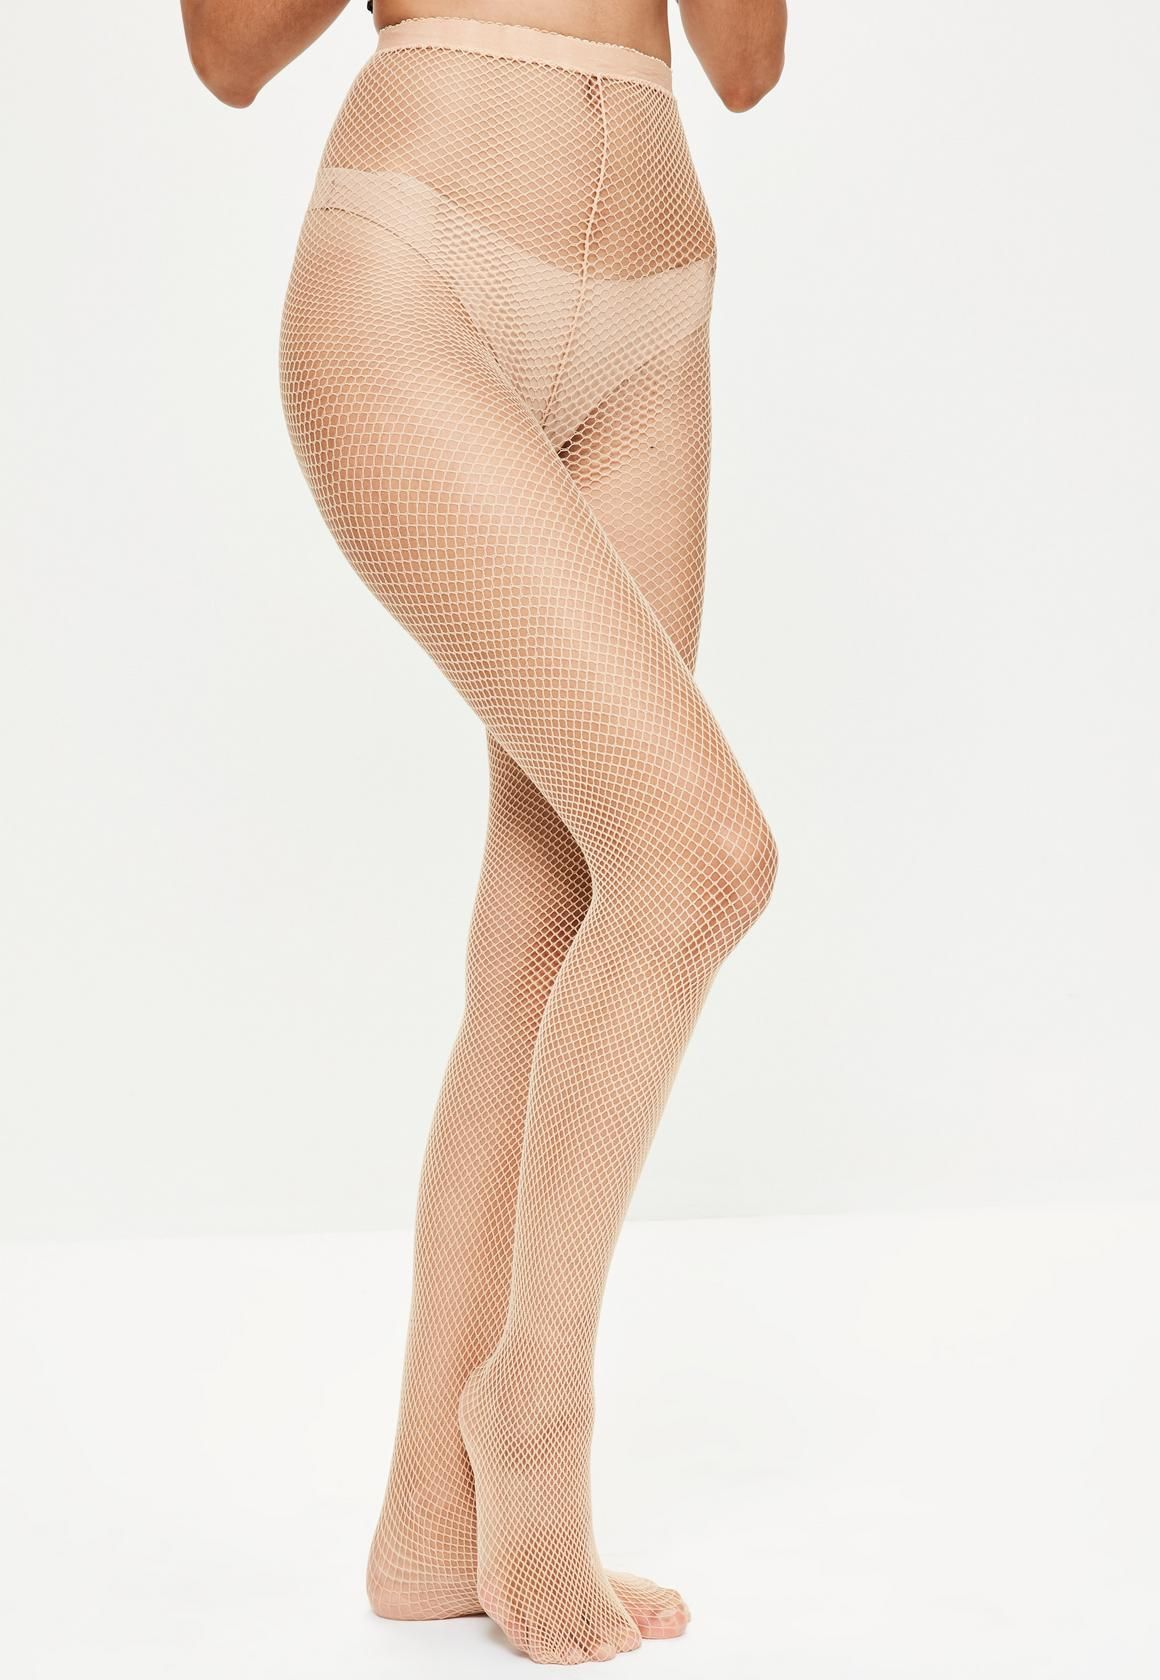 8b8361bc401 Image result for tights